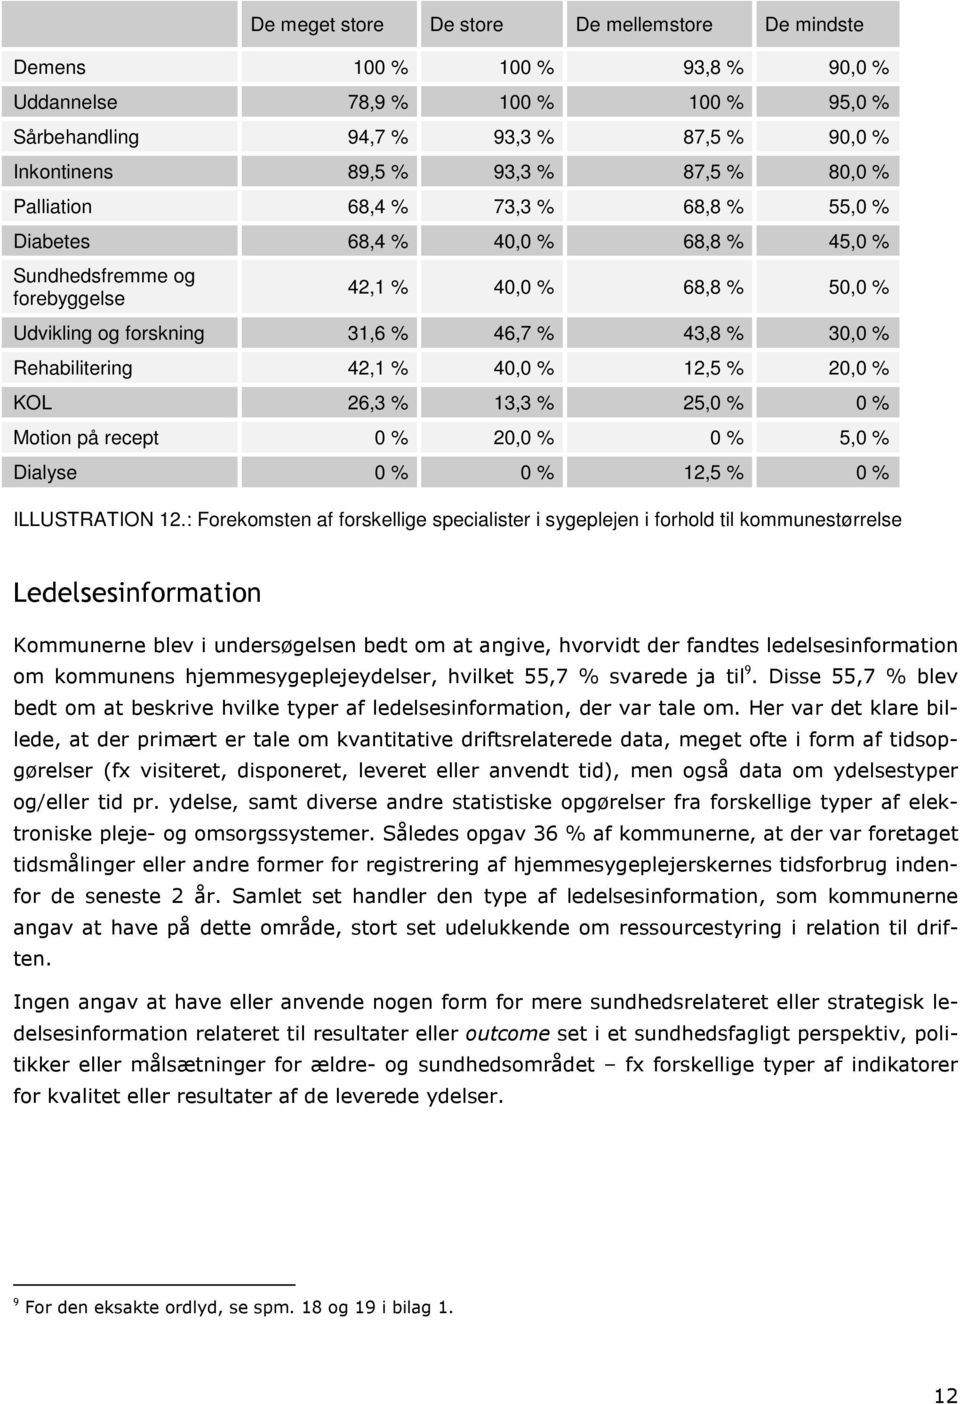 Rehabilitering 42,1 % 40,0 % 12,5 % 20,0 % KOL 26,3 % 13,3 % 25,0 % 0 % Motion på recept 0 % 20,0 % 0 % 5,0 % Dialyse 0 % 0 % 12,5 % 0 % ILLUSTRATION 12.